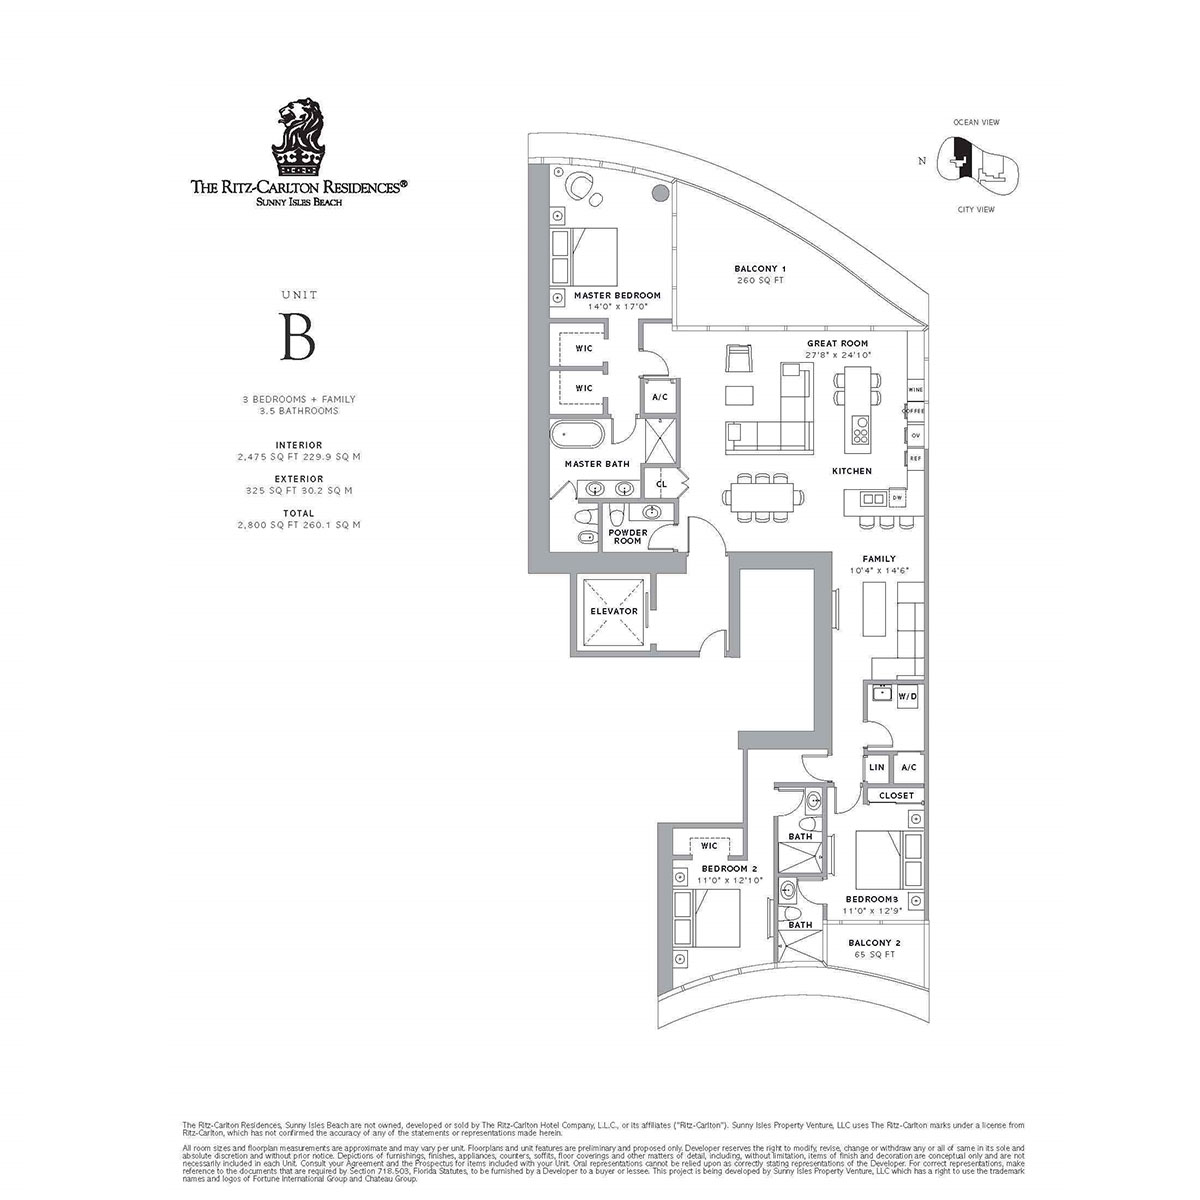 Ritz-Carlton Residences Sunny Isles Beach - Floorplan 3